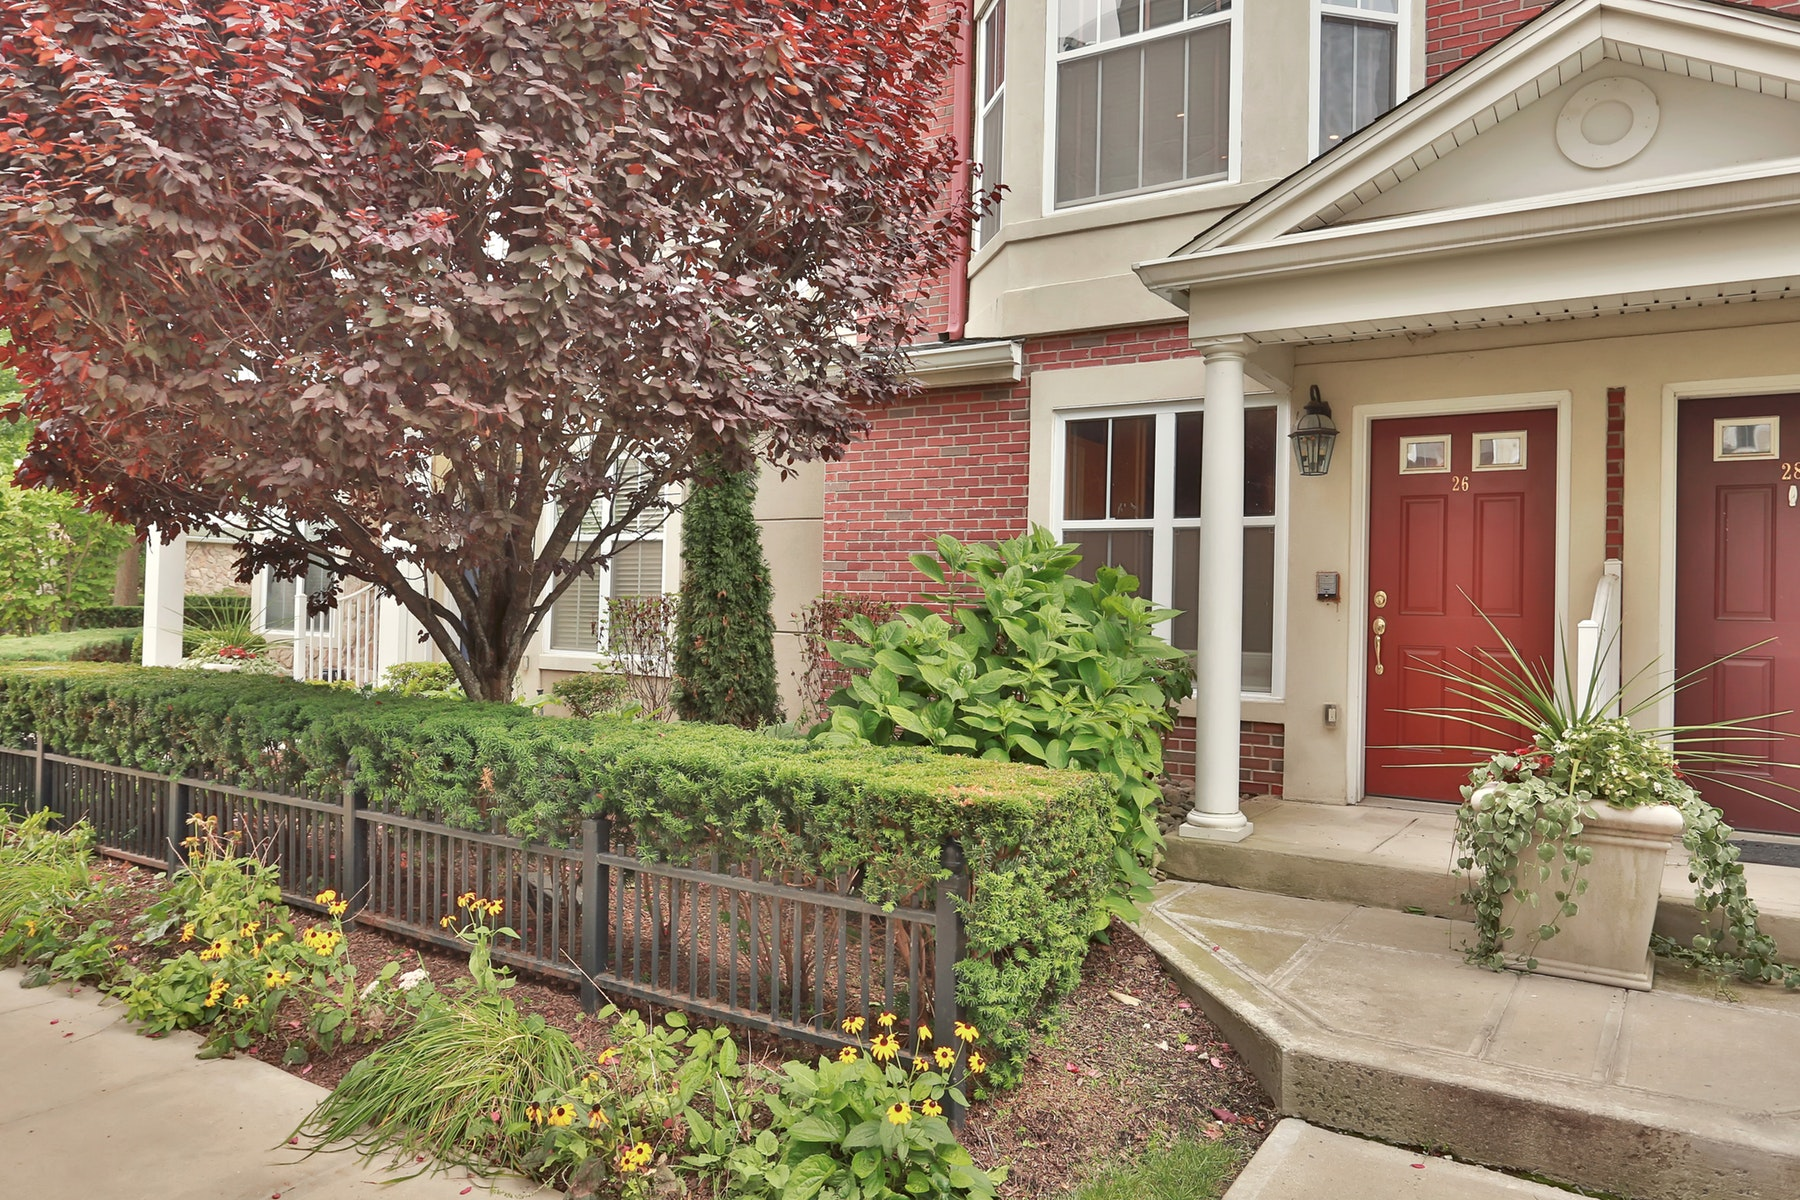 townhouses 為 出售 在 Spacious Townhouse in Harbors at Haverstraw 26 BRIDGE LANE, Haverstraw, 纽约 10927 美國